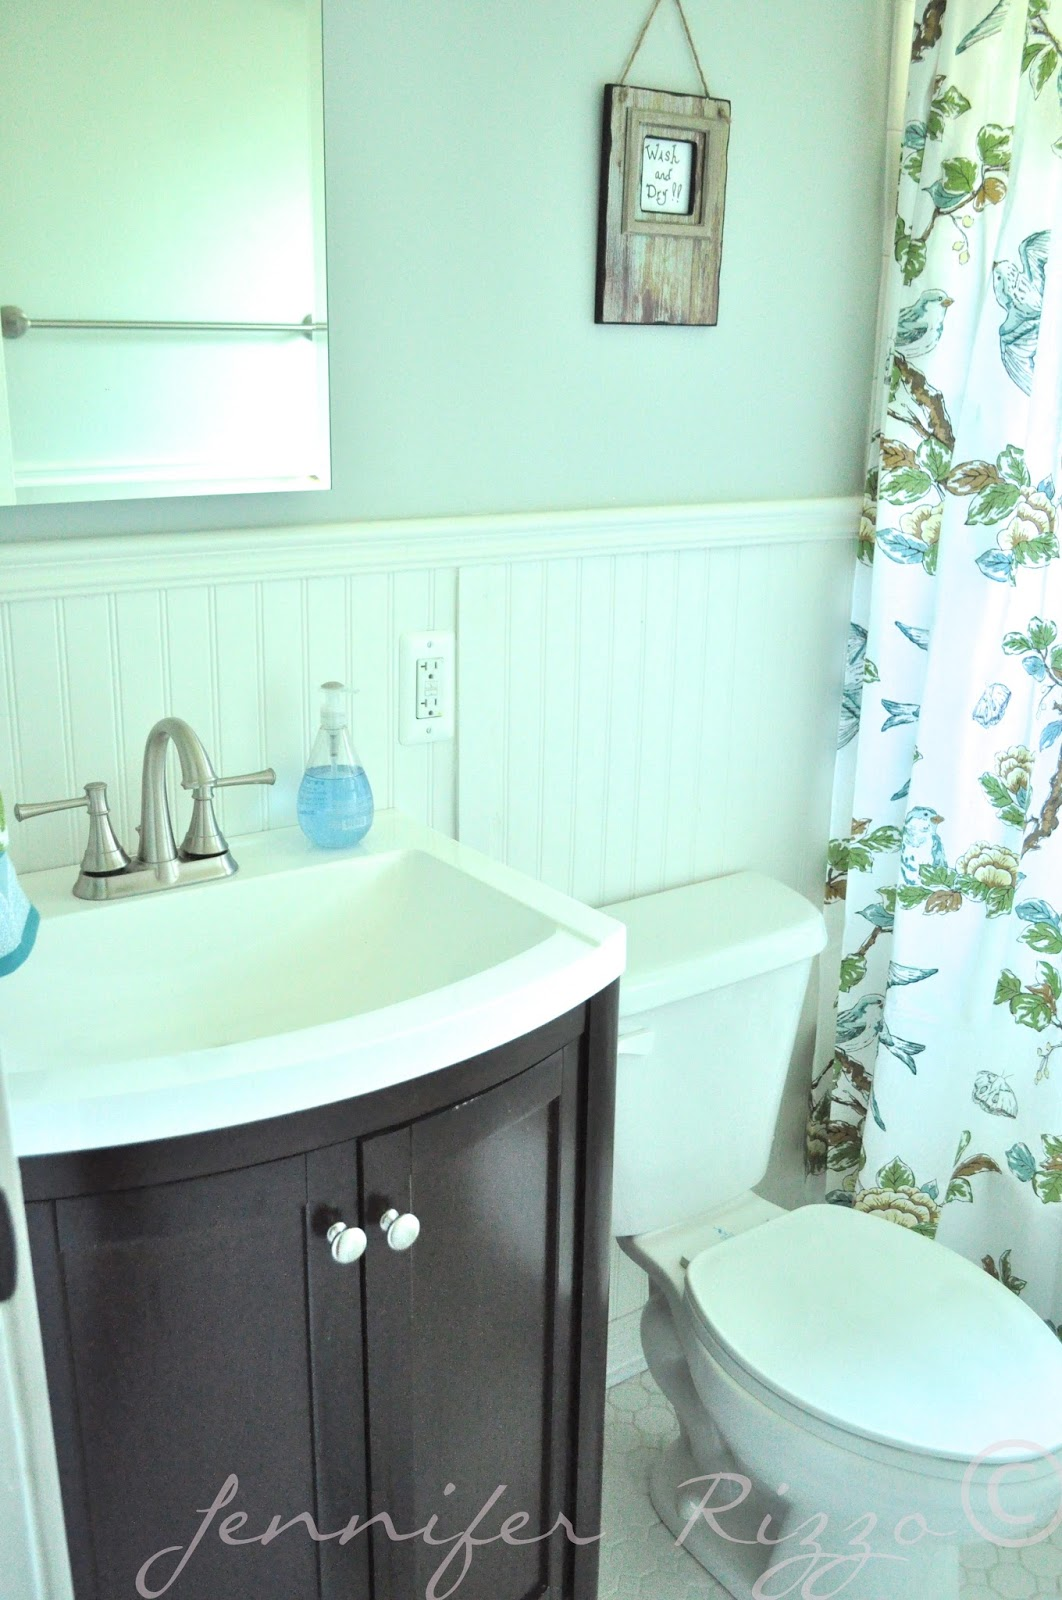 The Oak House Project Full Bathroom Renovation With Beadboard Wainscotting